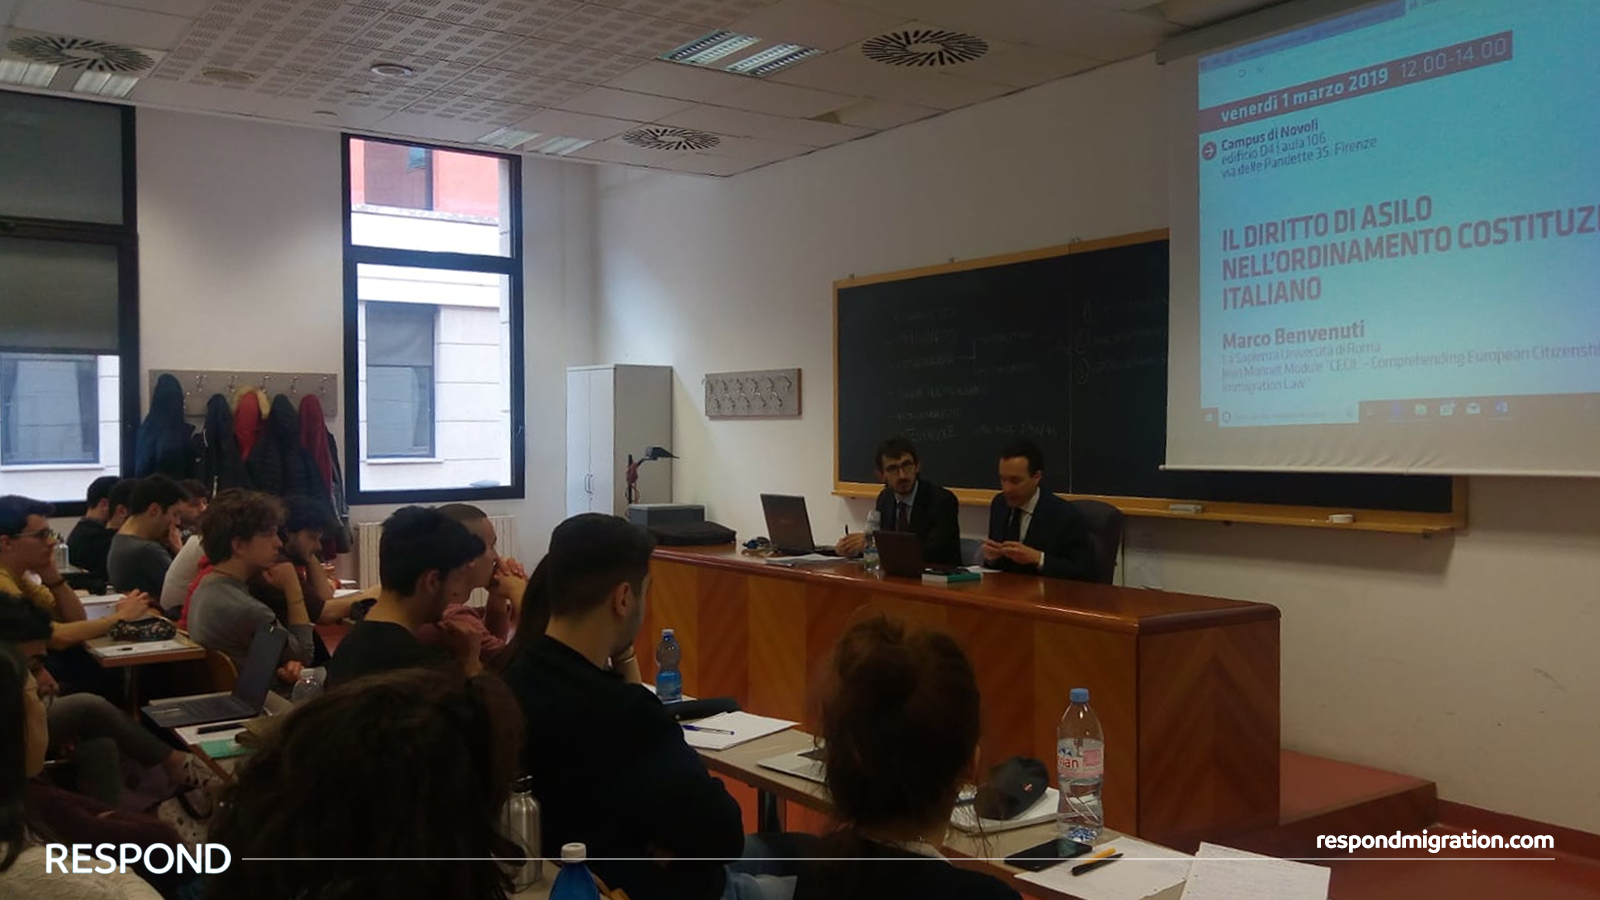 Prof. Benvenuti  illustratining the Italian constitutional grounding of the right to asylum in his lecture at the  University of Florence , on the 1st March 2019